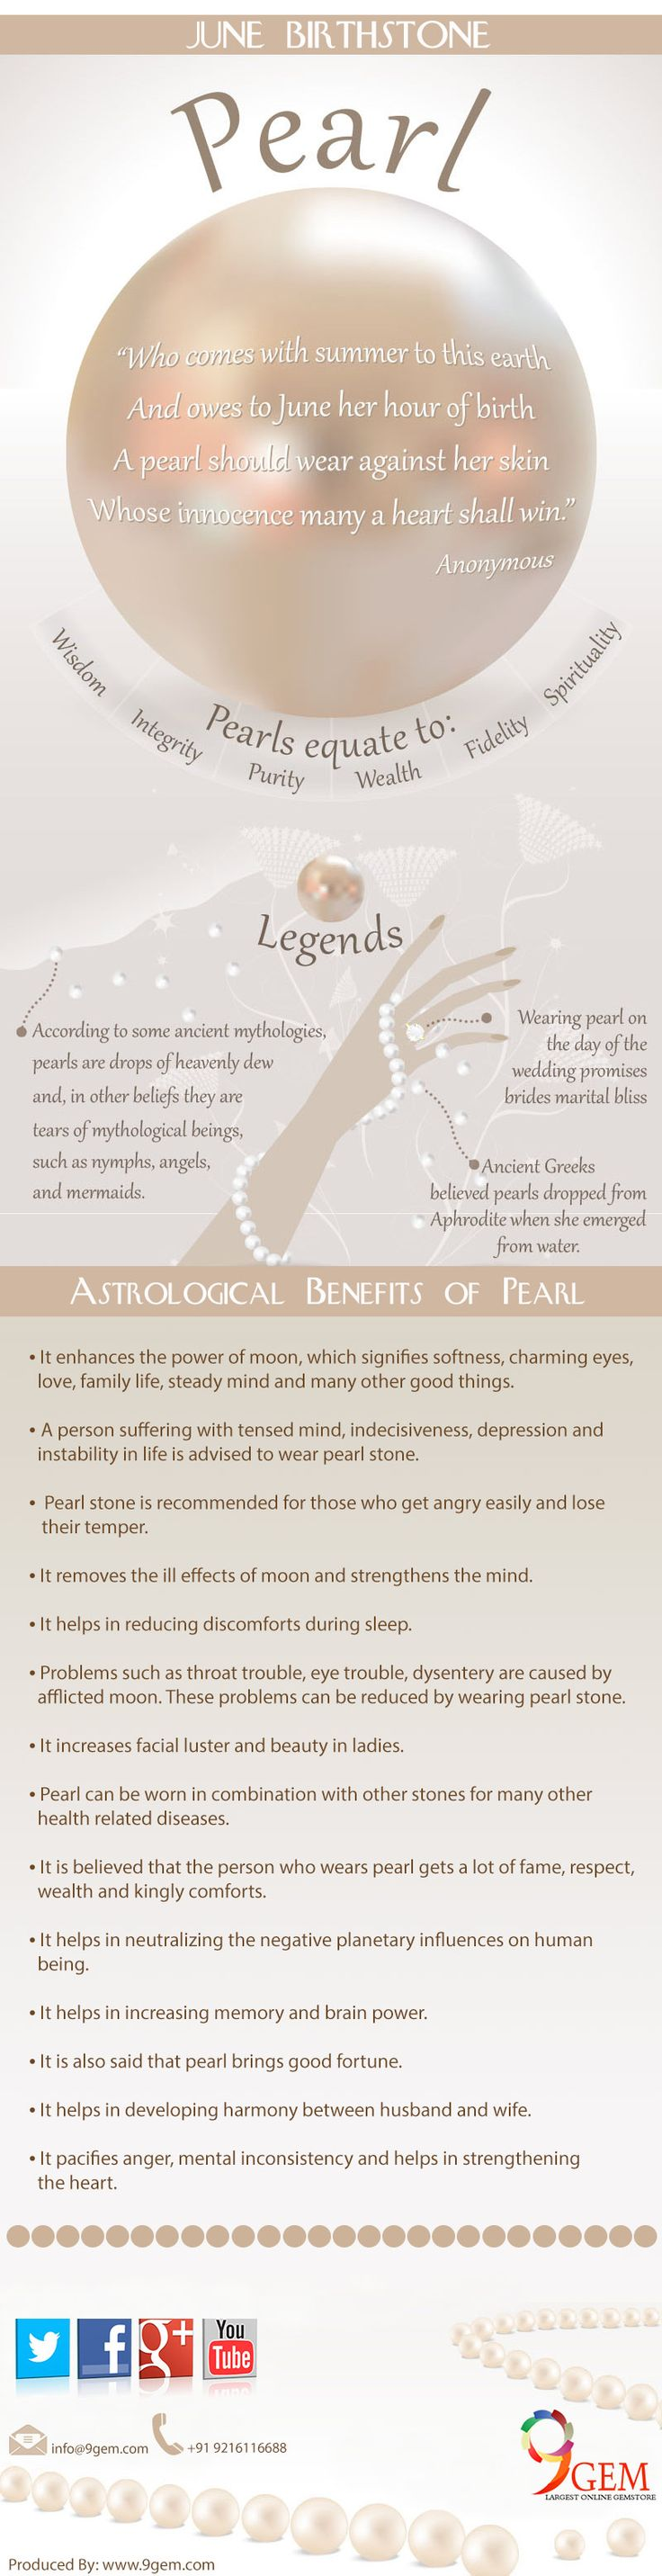 According To Vedic Astrology Pearl Represents The Planet Moon Moon Rules  The Emotion And Mind